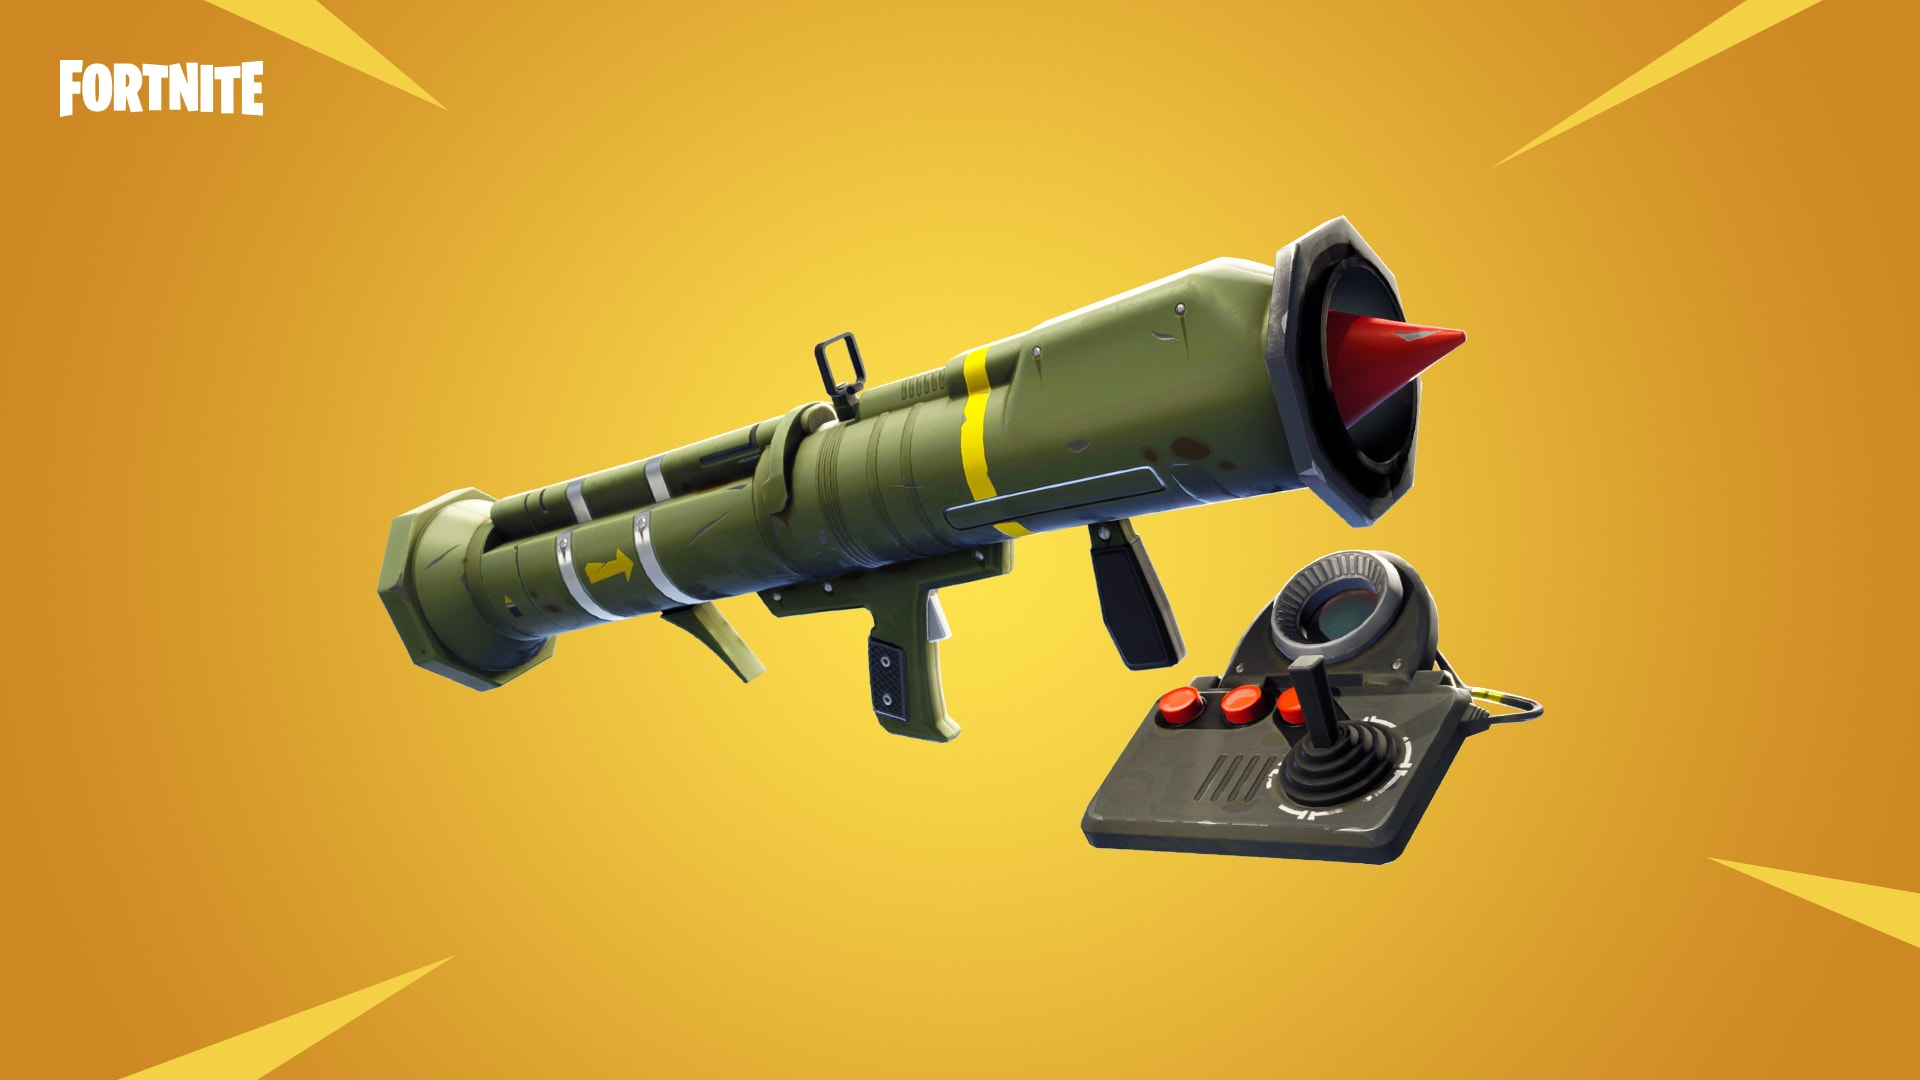 Fortnite-aggiornamento-patch-5-10-2